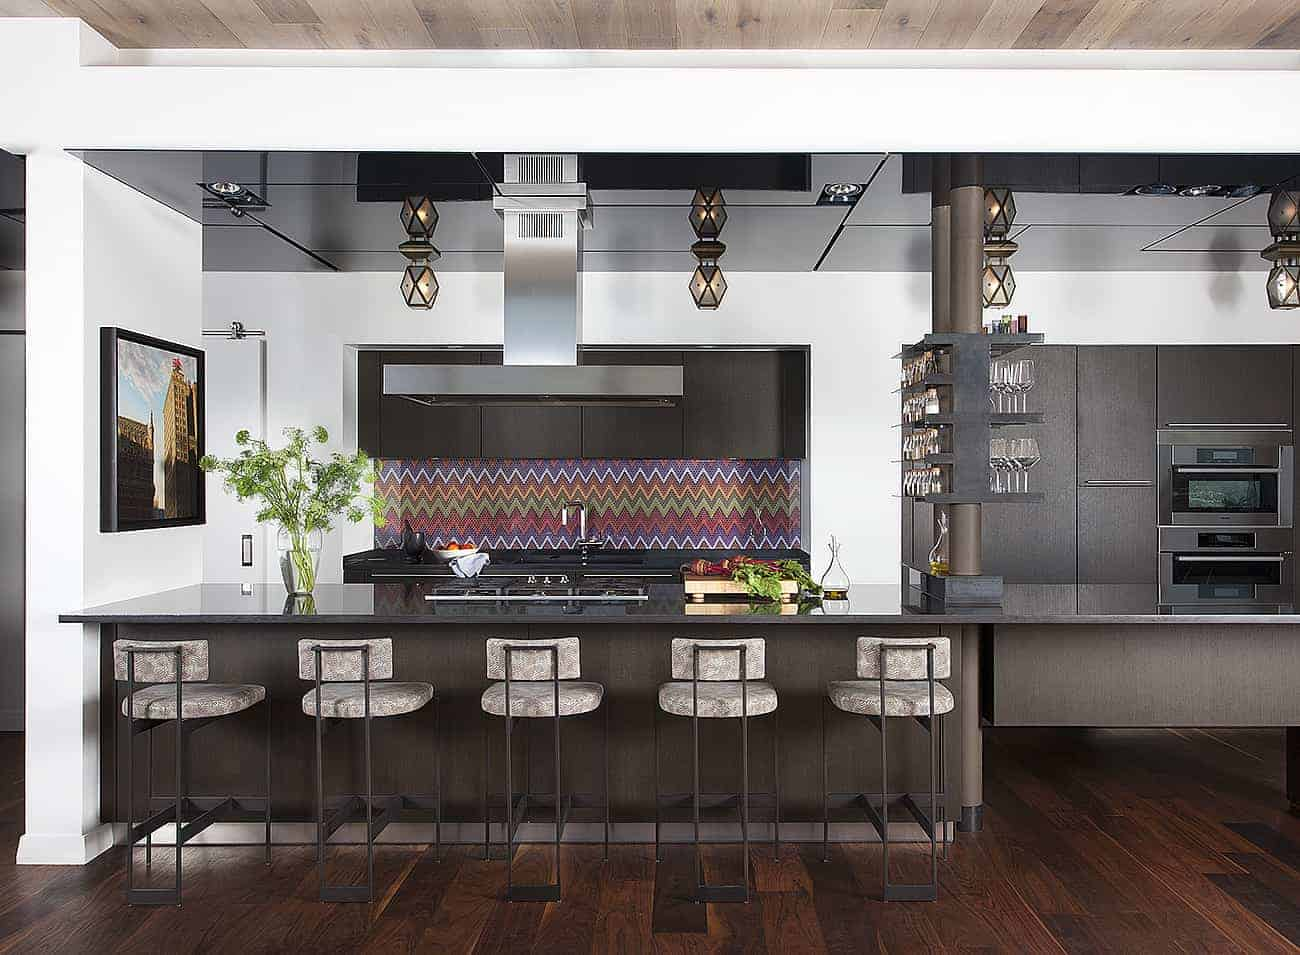 The black and white theme of this industrial-style kitchen is complemented by the hardwood flooring and provided with a dash of color from the backsplash that has a quirky pattern that softens up the sleek elements.